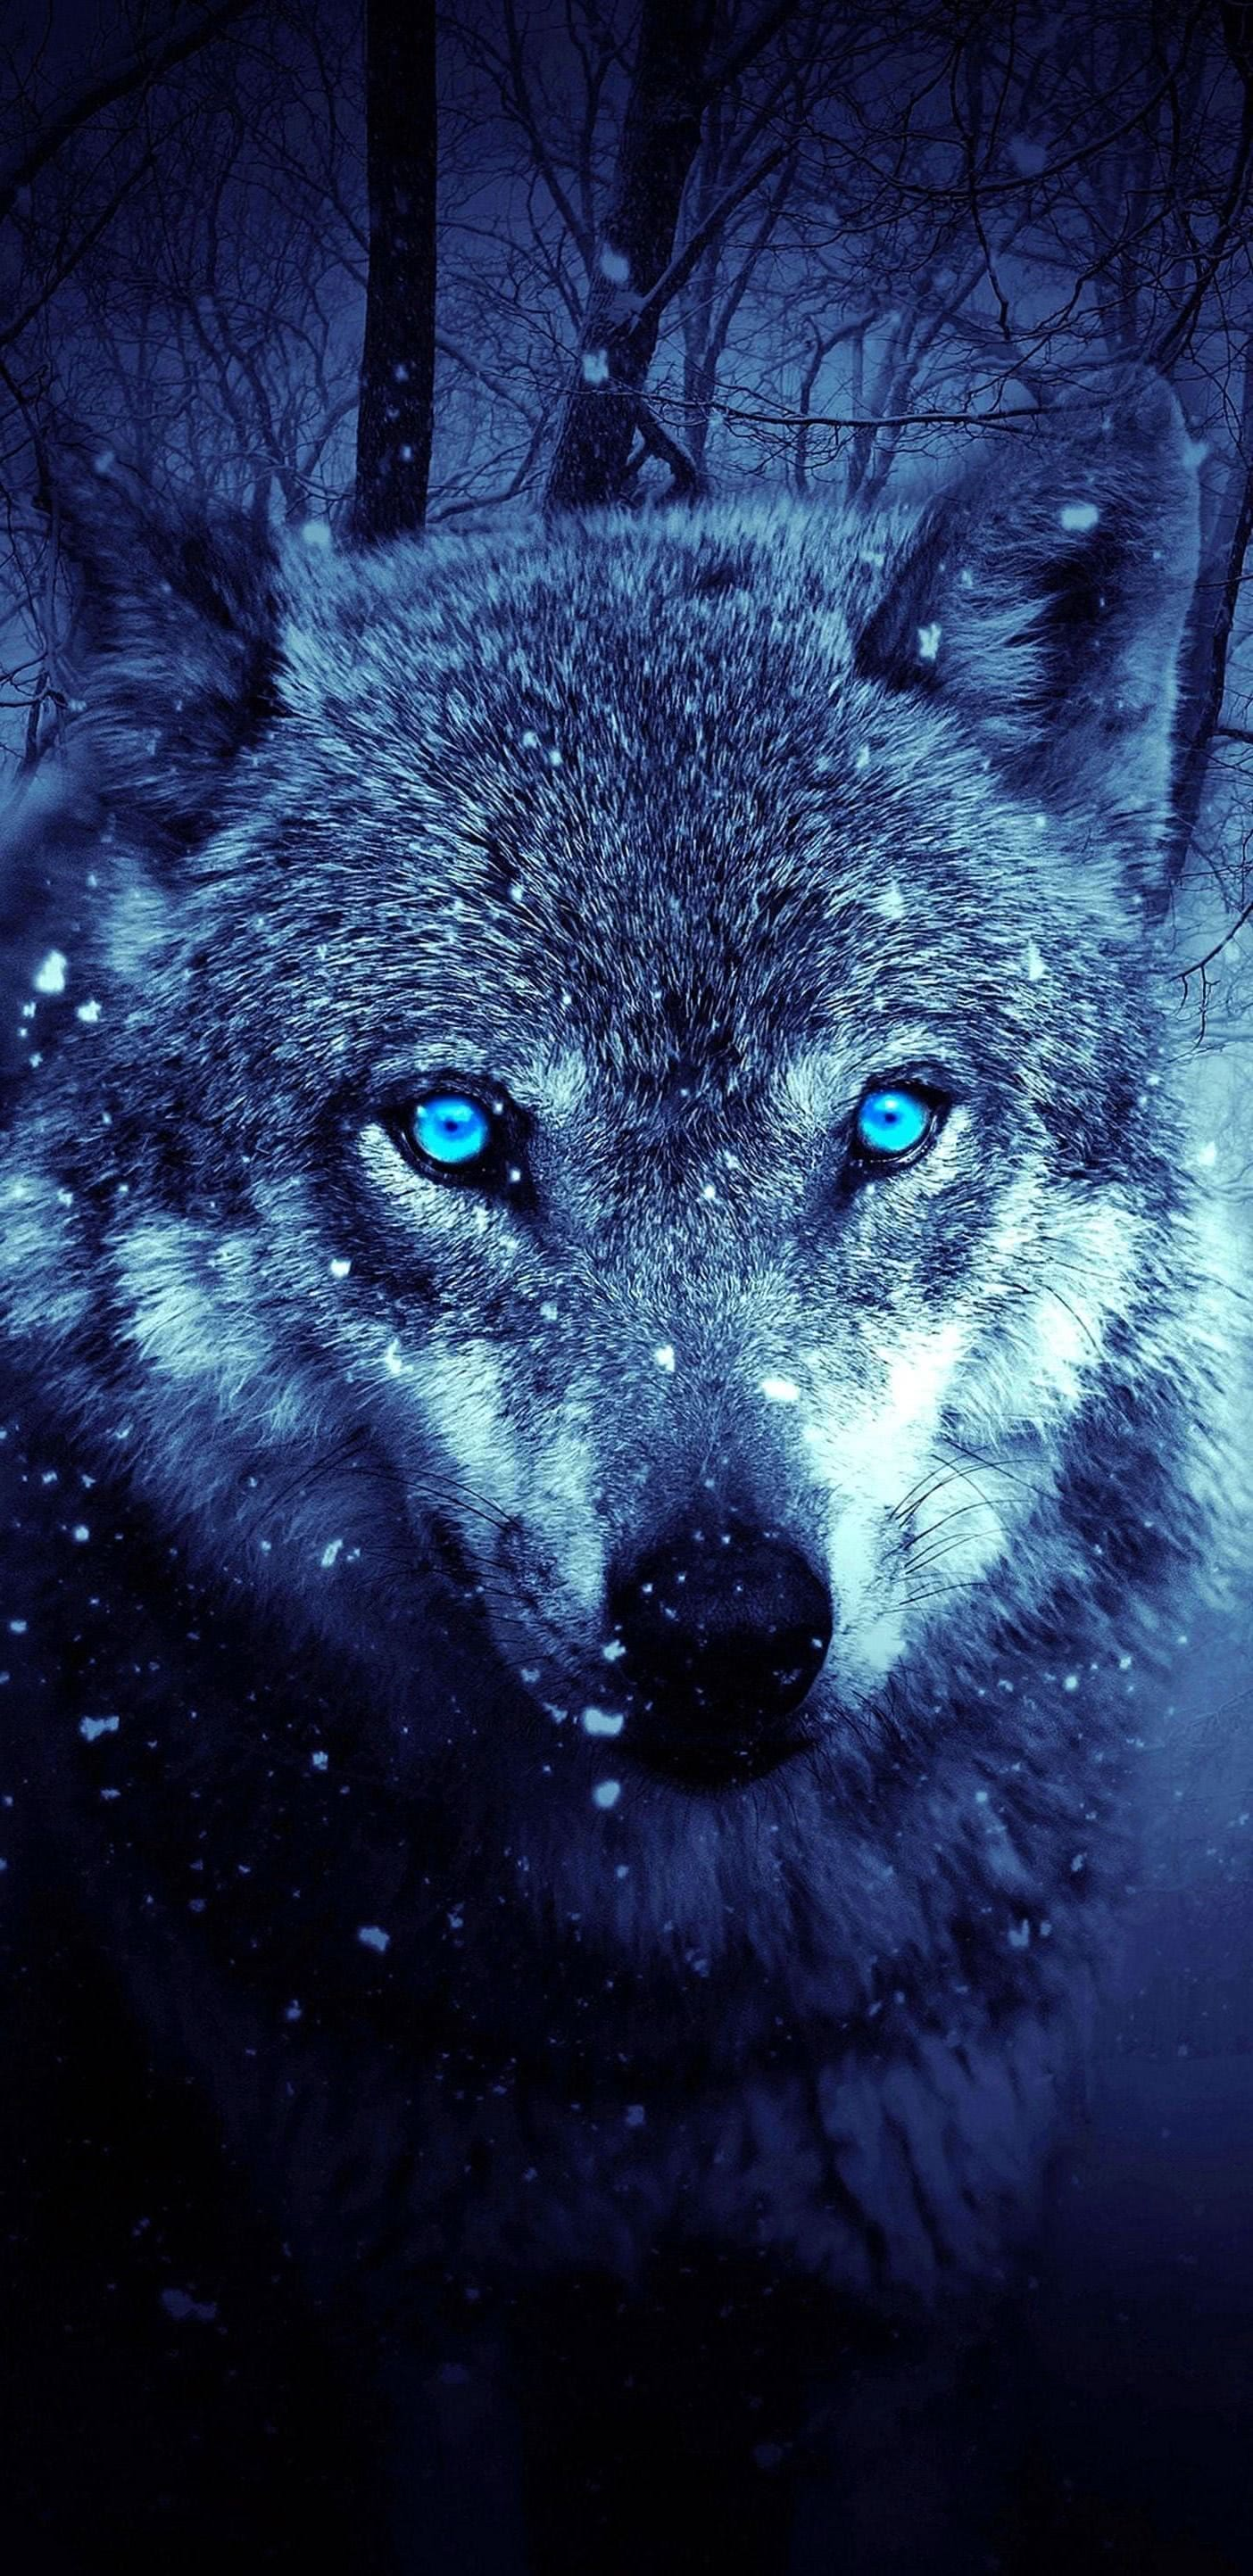 1440x2960 fantasy wolf 5k samsung galaxy note 98 s9s8 1 8 wolf wallpapers.pro